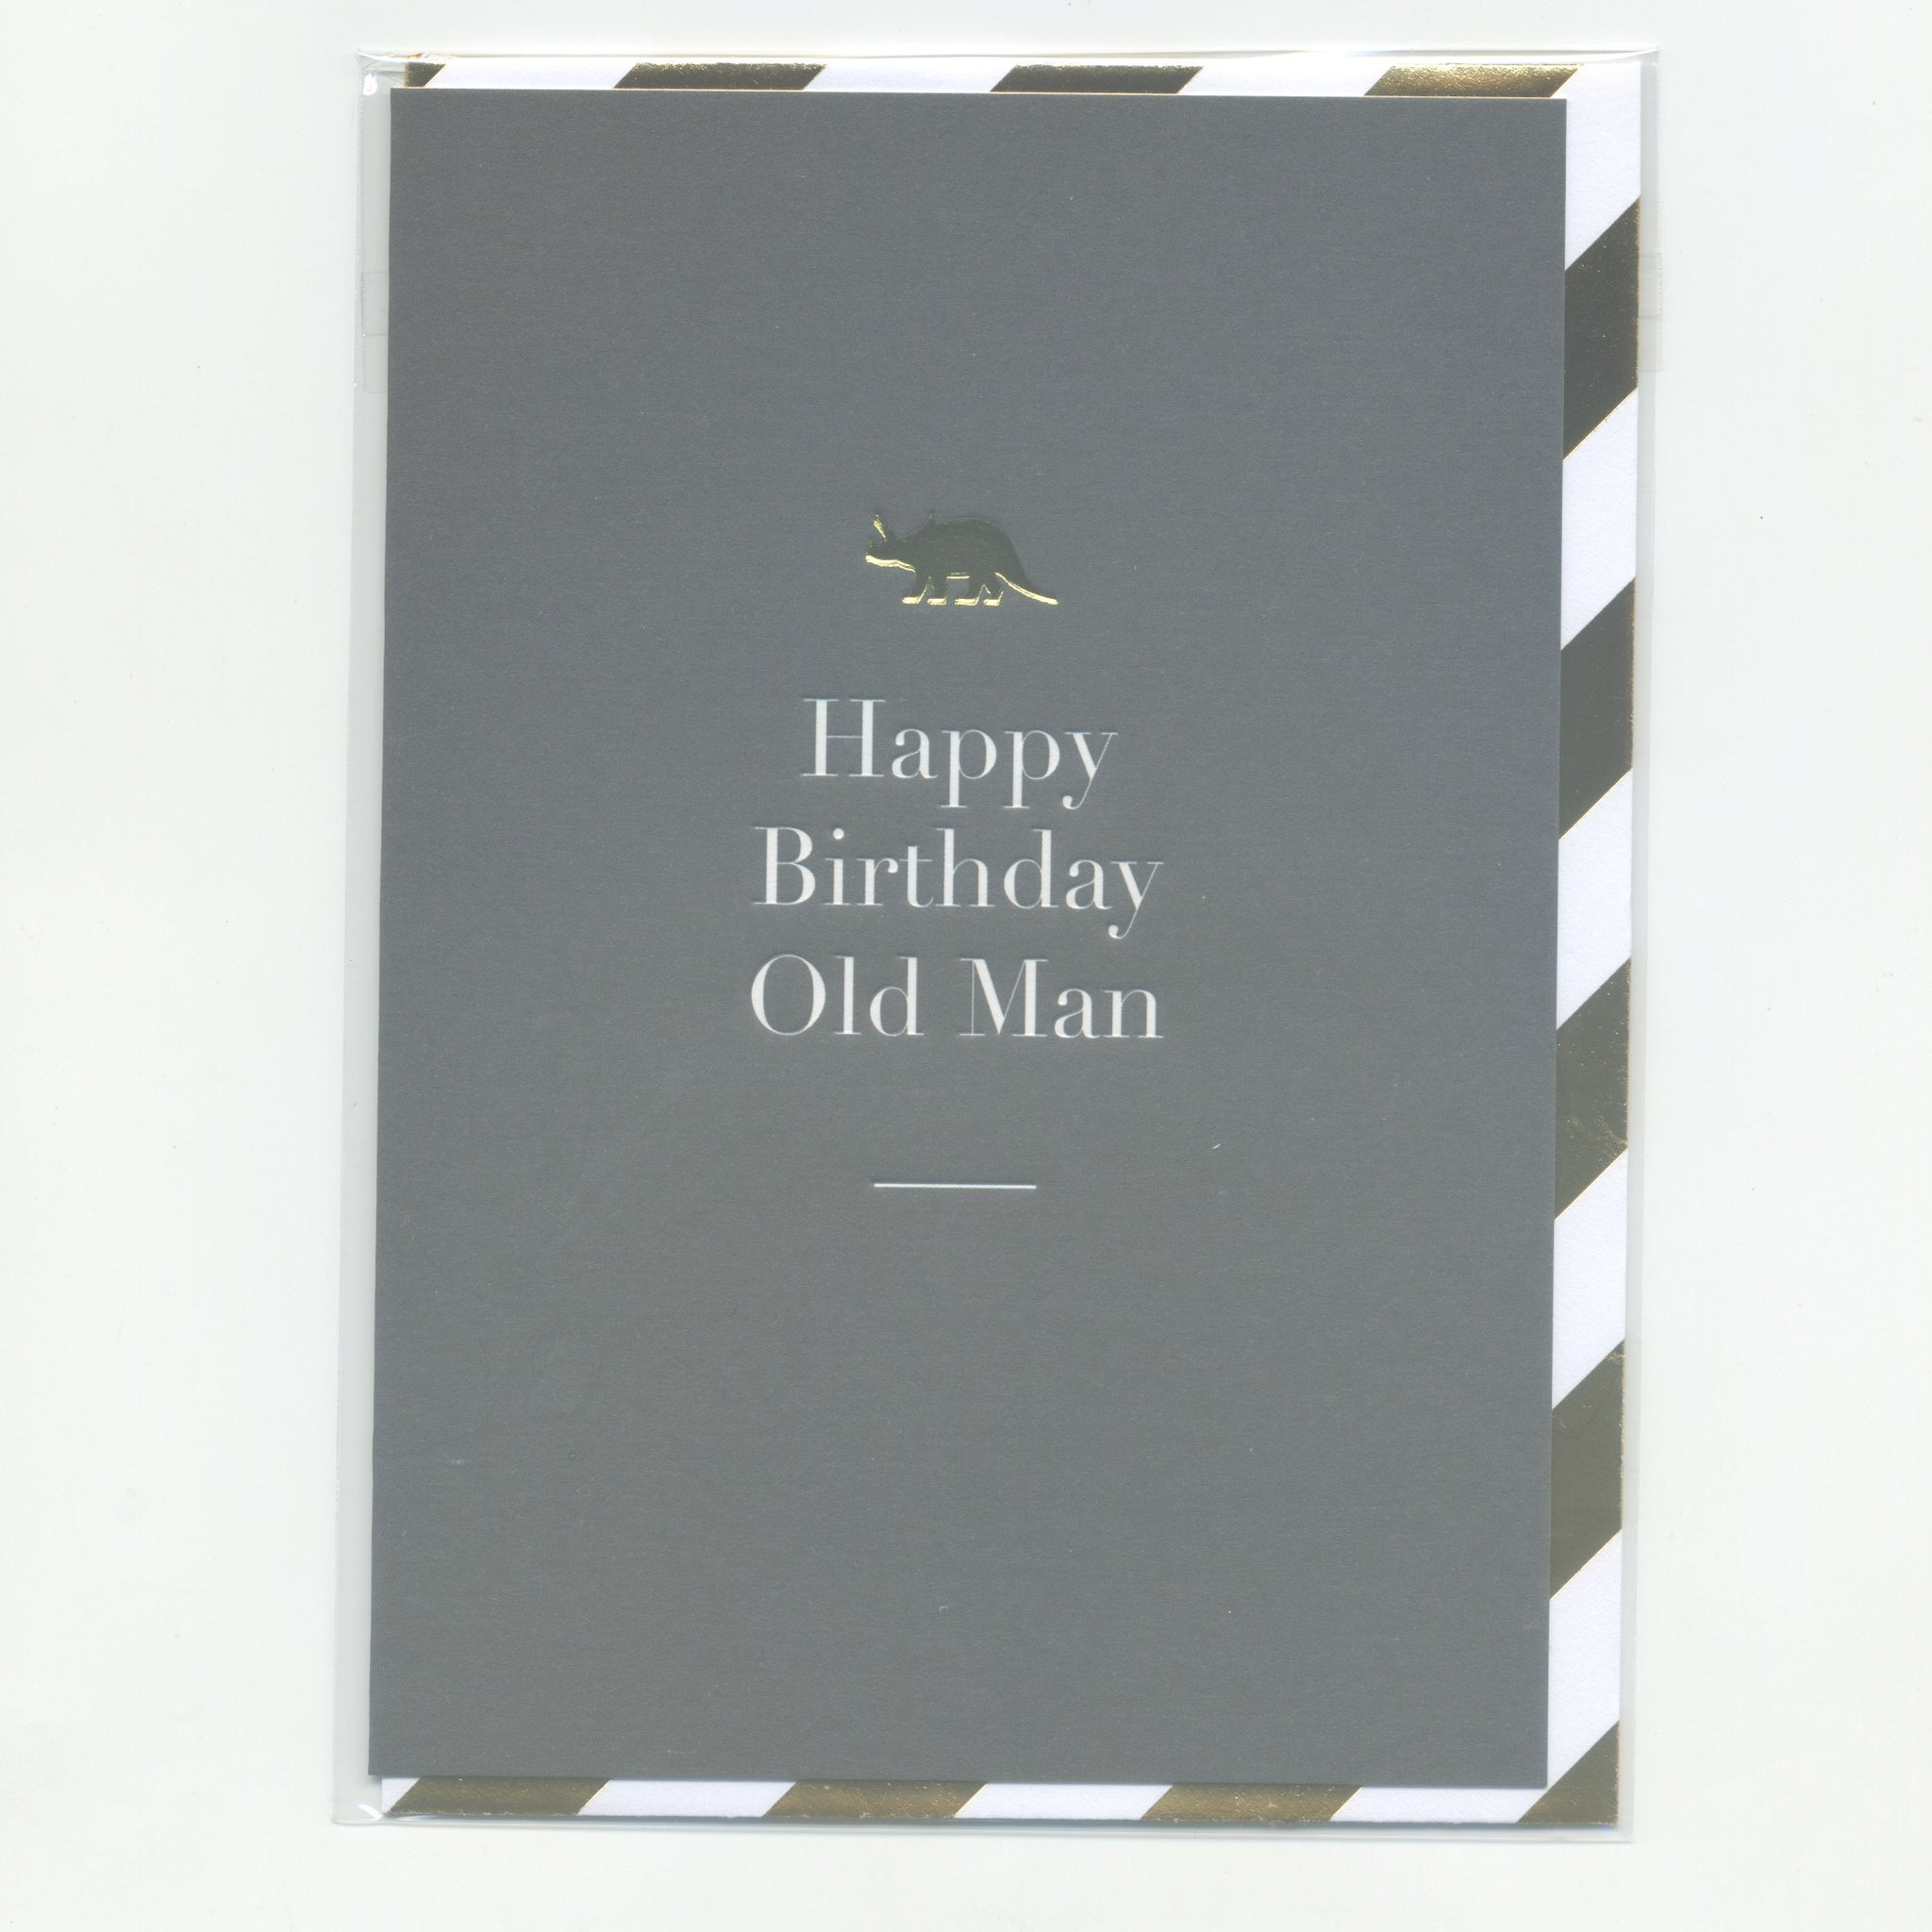 Happy Birthday Old Man - Card